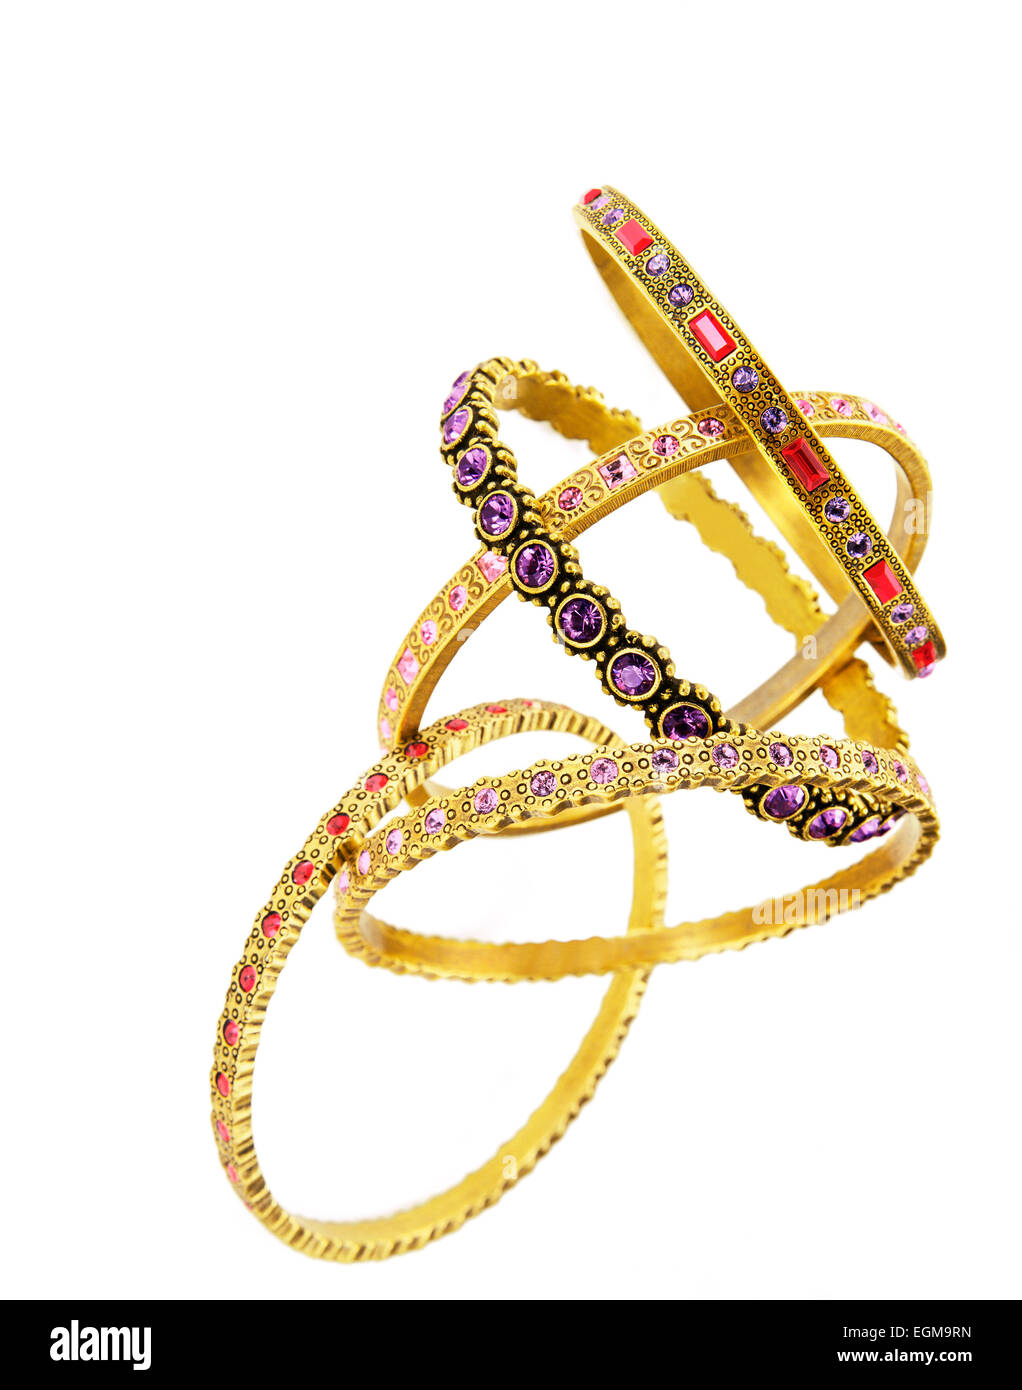 Gold Bracelets With Gemstones - Stock Image